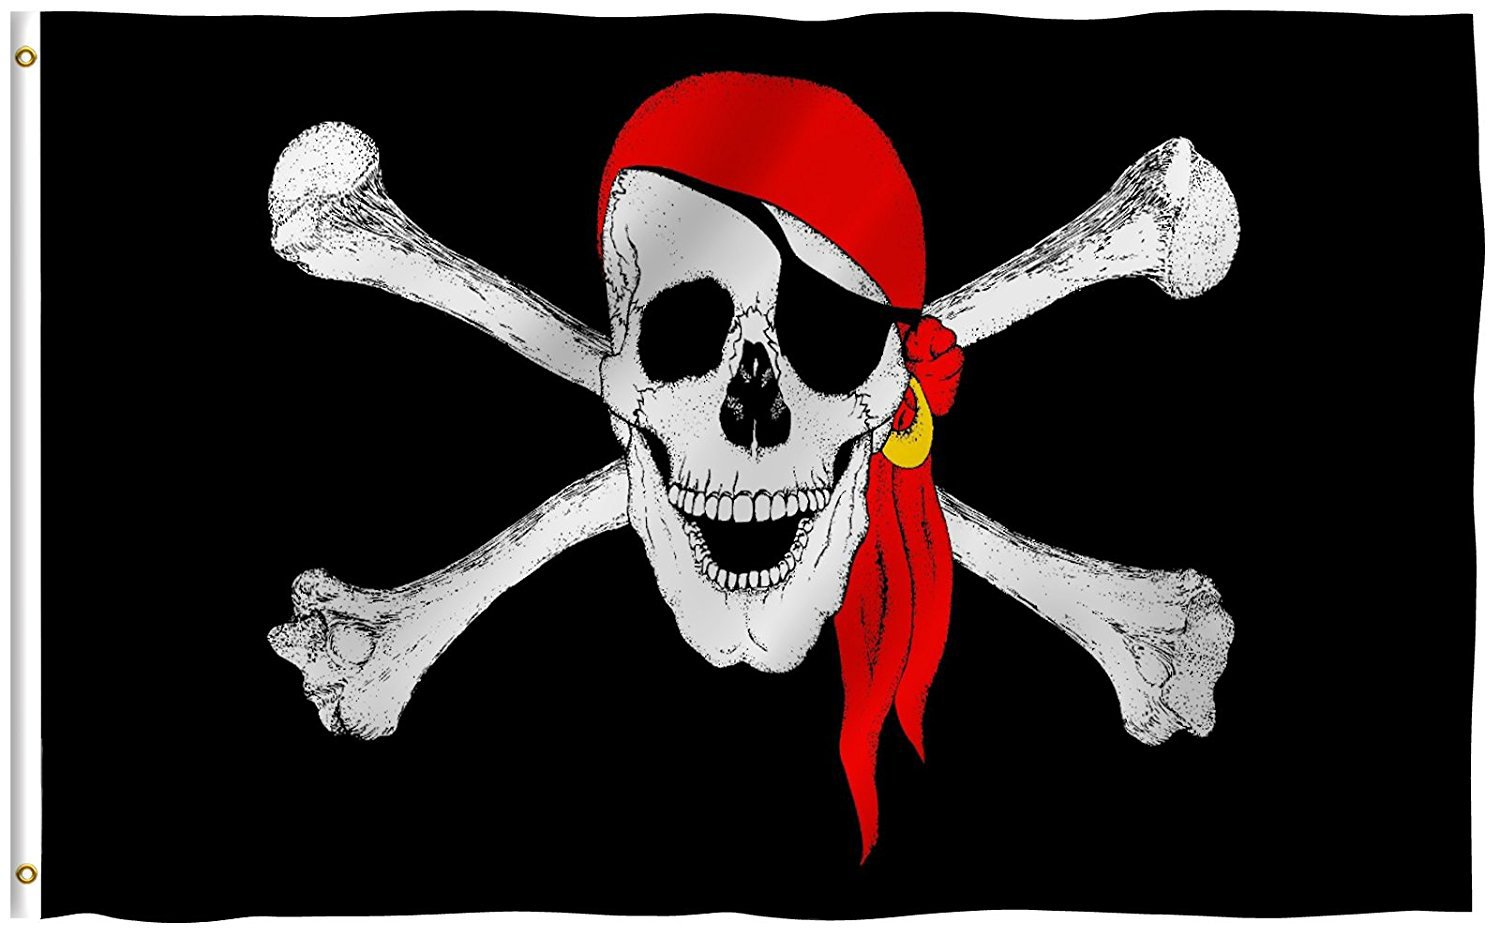 Meta-U Wholesale 3x5 Ft. Dead Man's Chest Flag - Vivid Color and UV Fade Resistant - Canvas Header and Double Stitched - Pirate Flags Polyester with Brass Grommets (240, Jolly Roge)